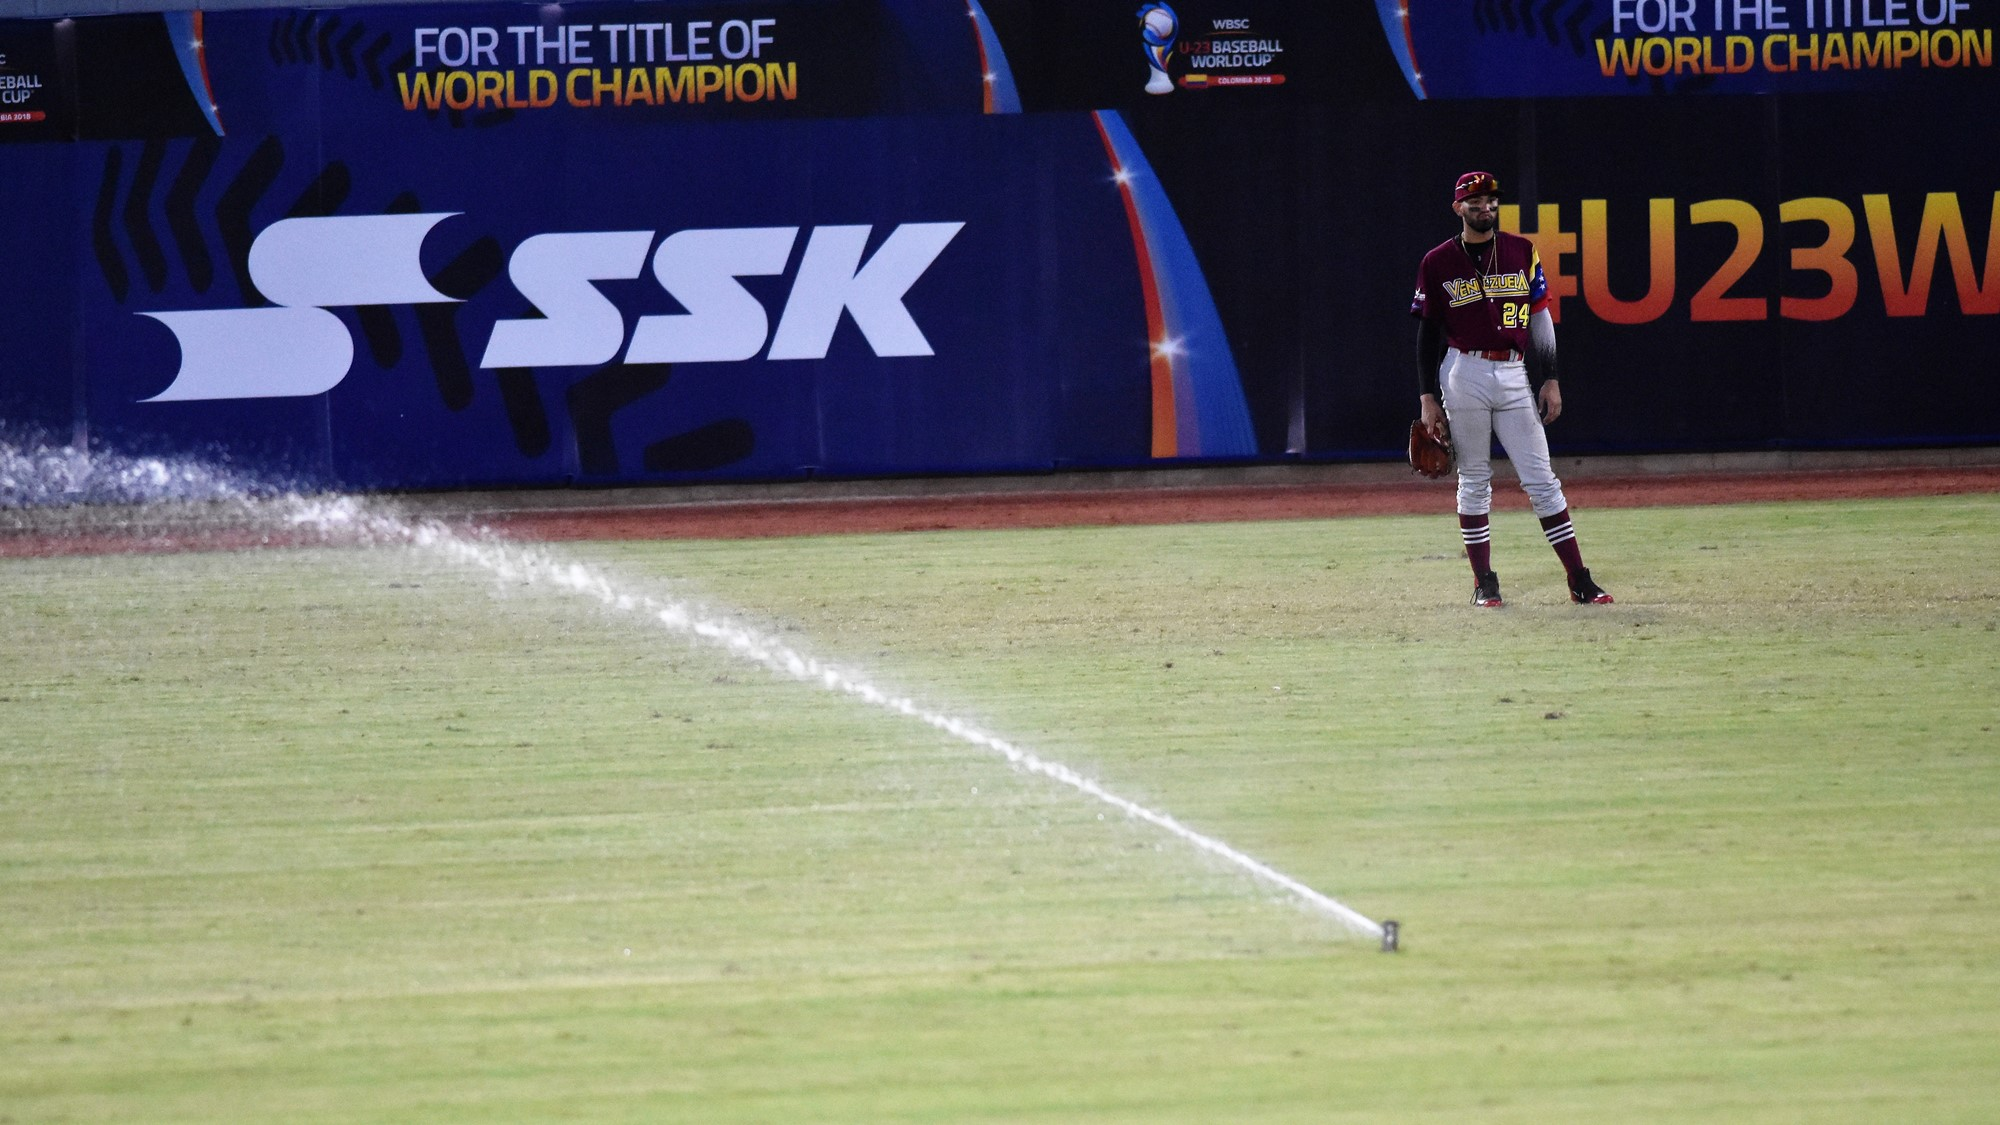 A little surprise for Venezuela's outfielder